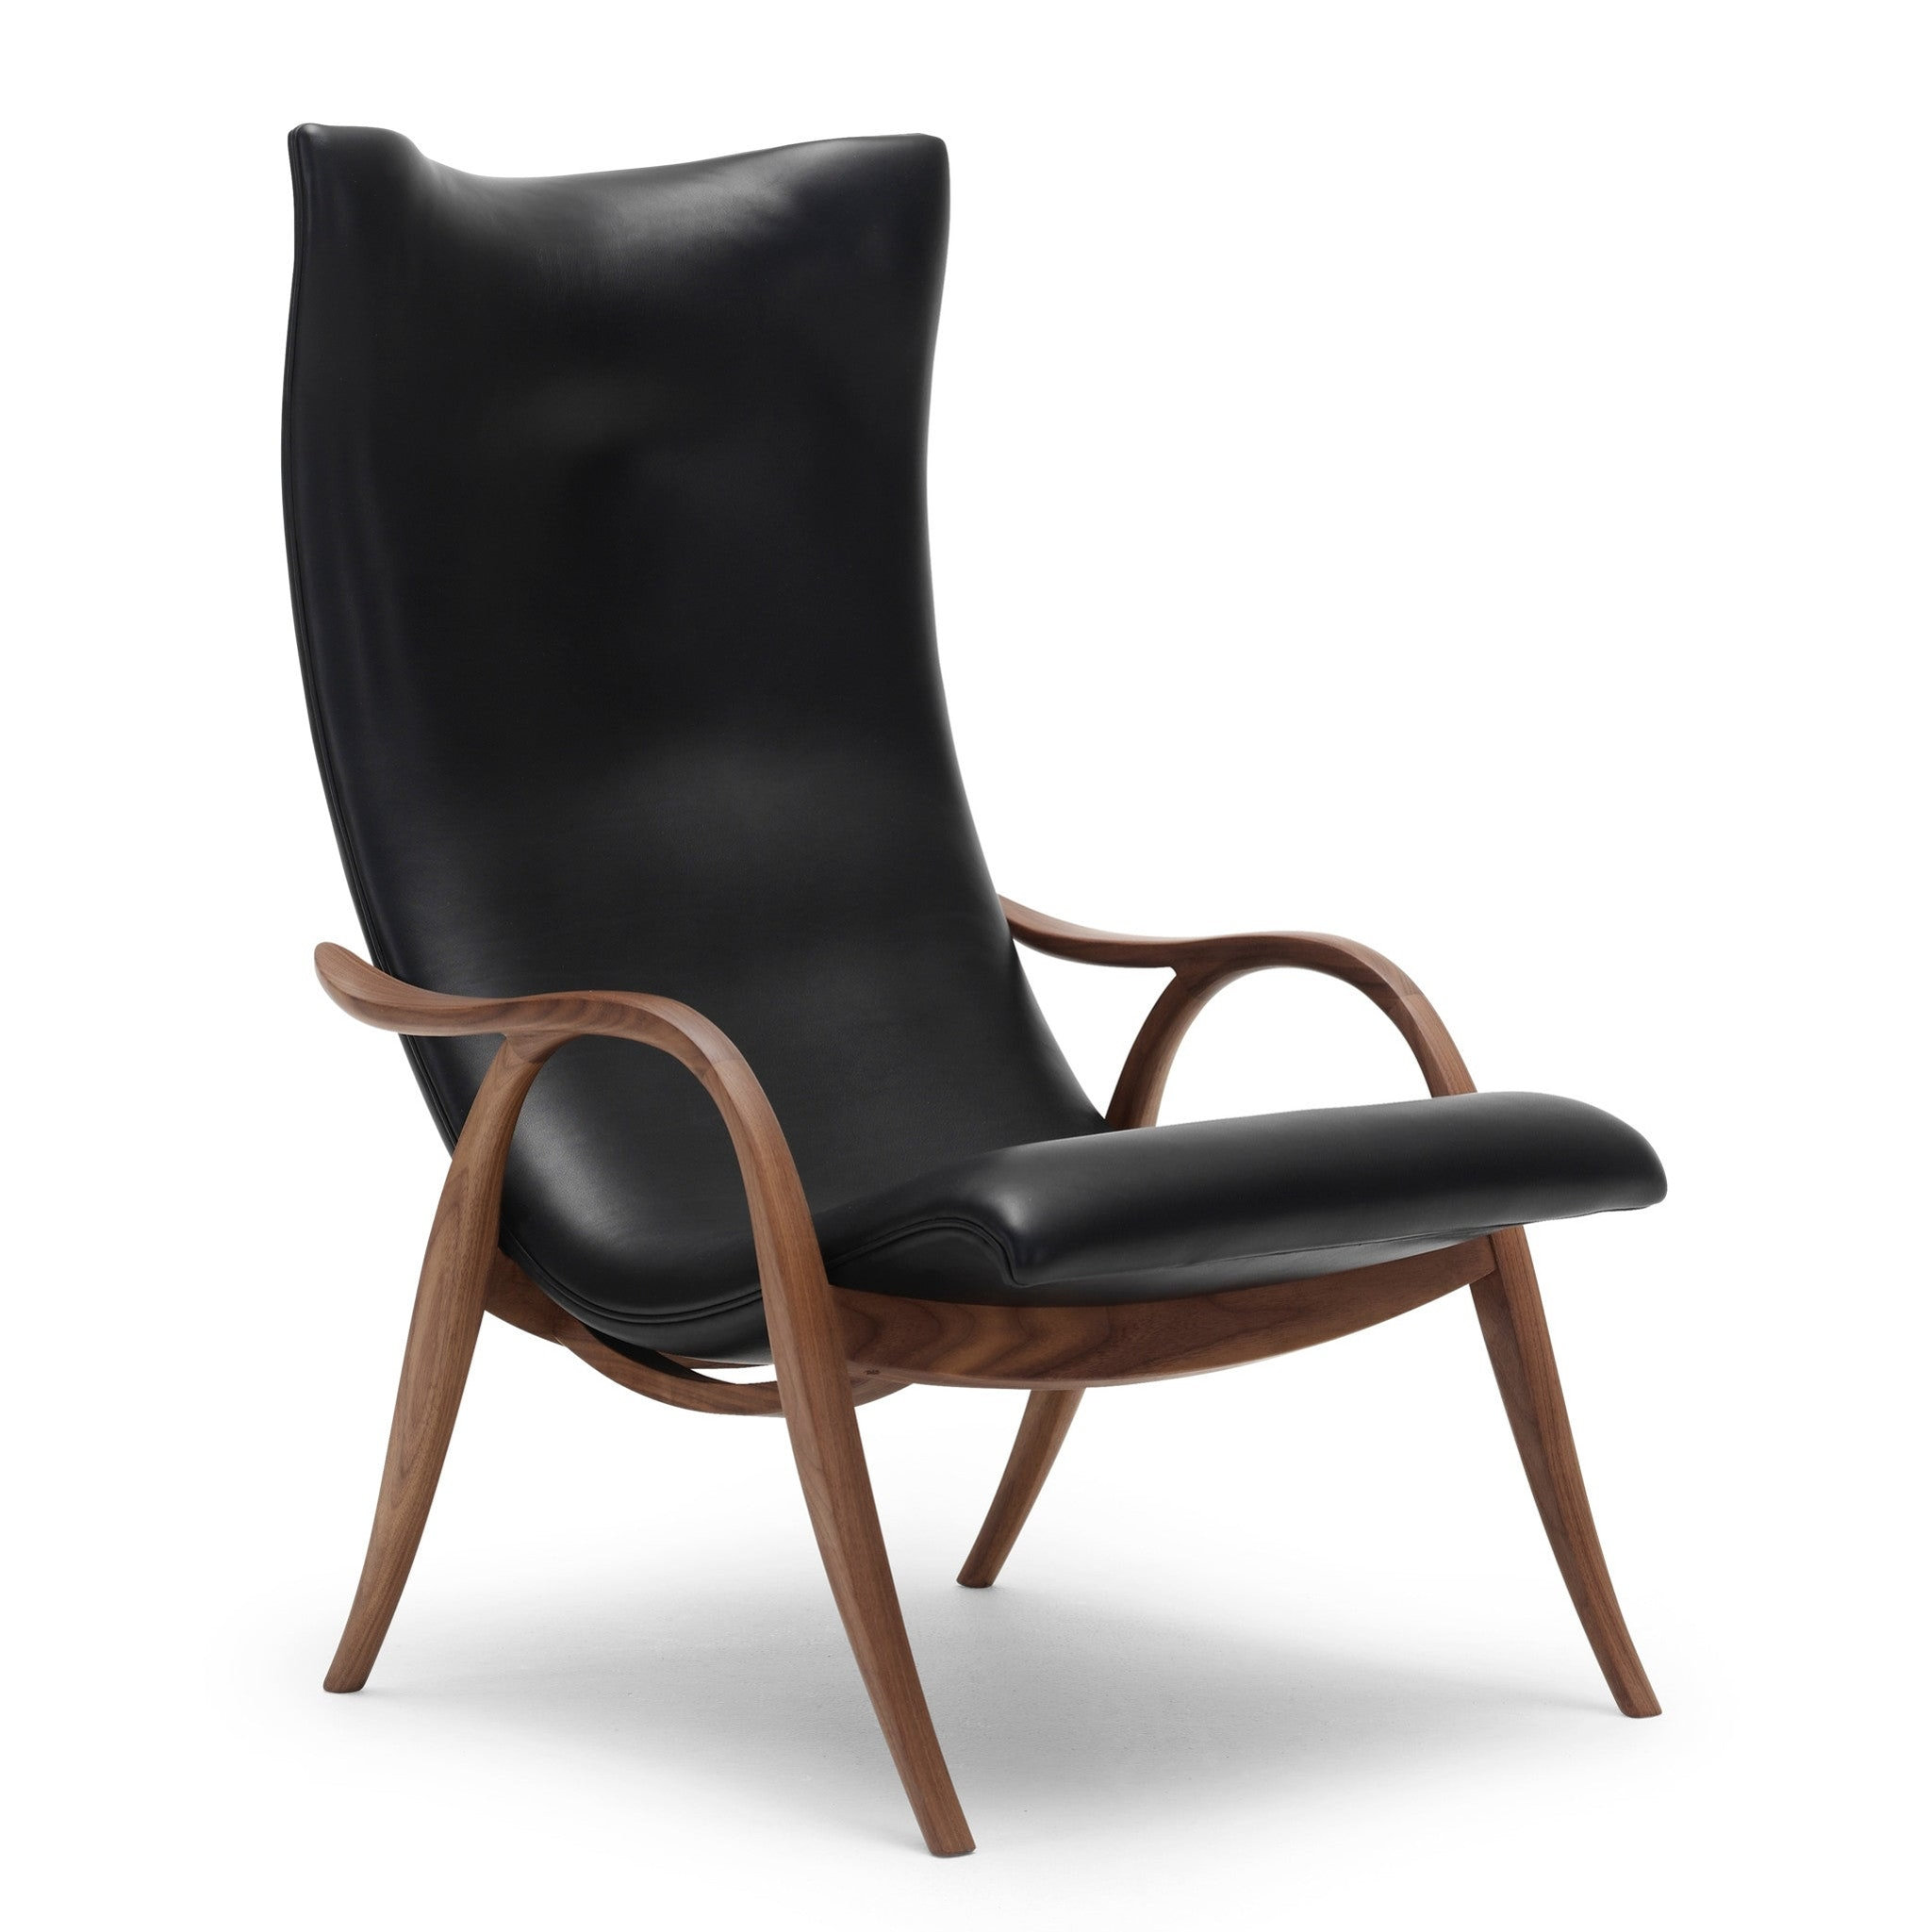 FH429 Signature Chair by Carl Hansen & Søn